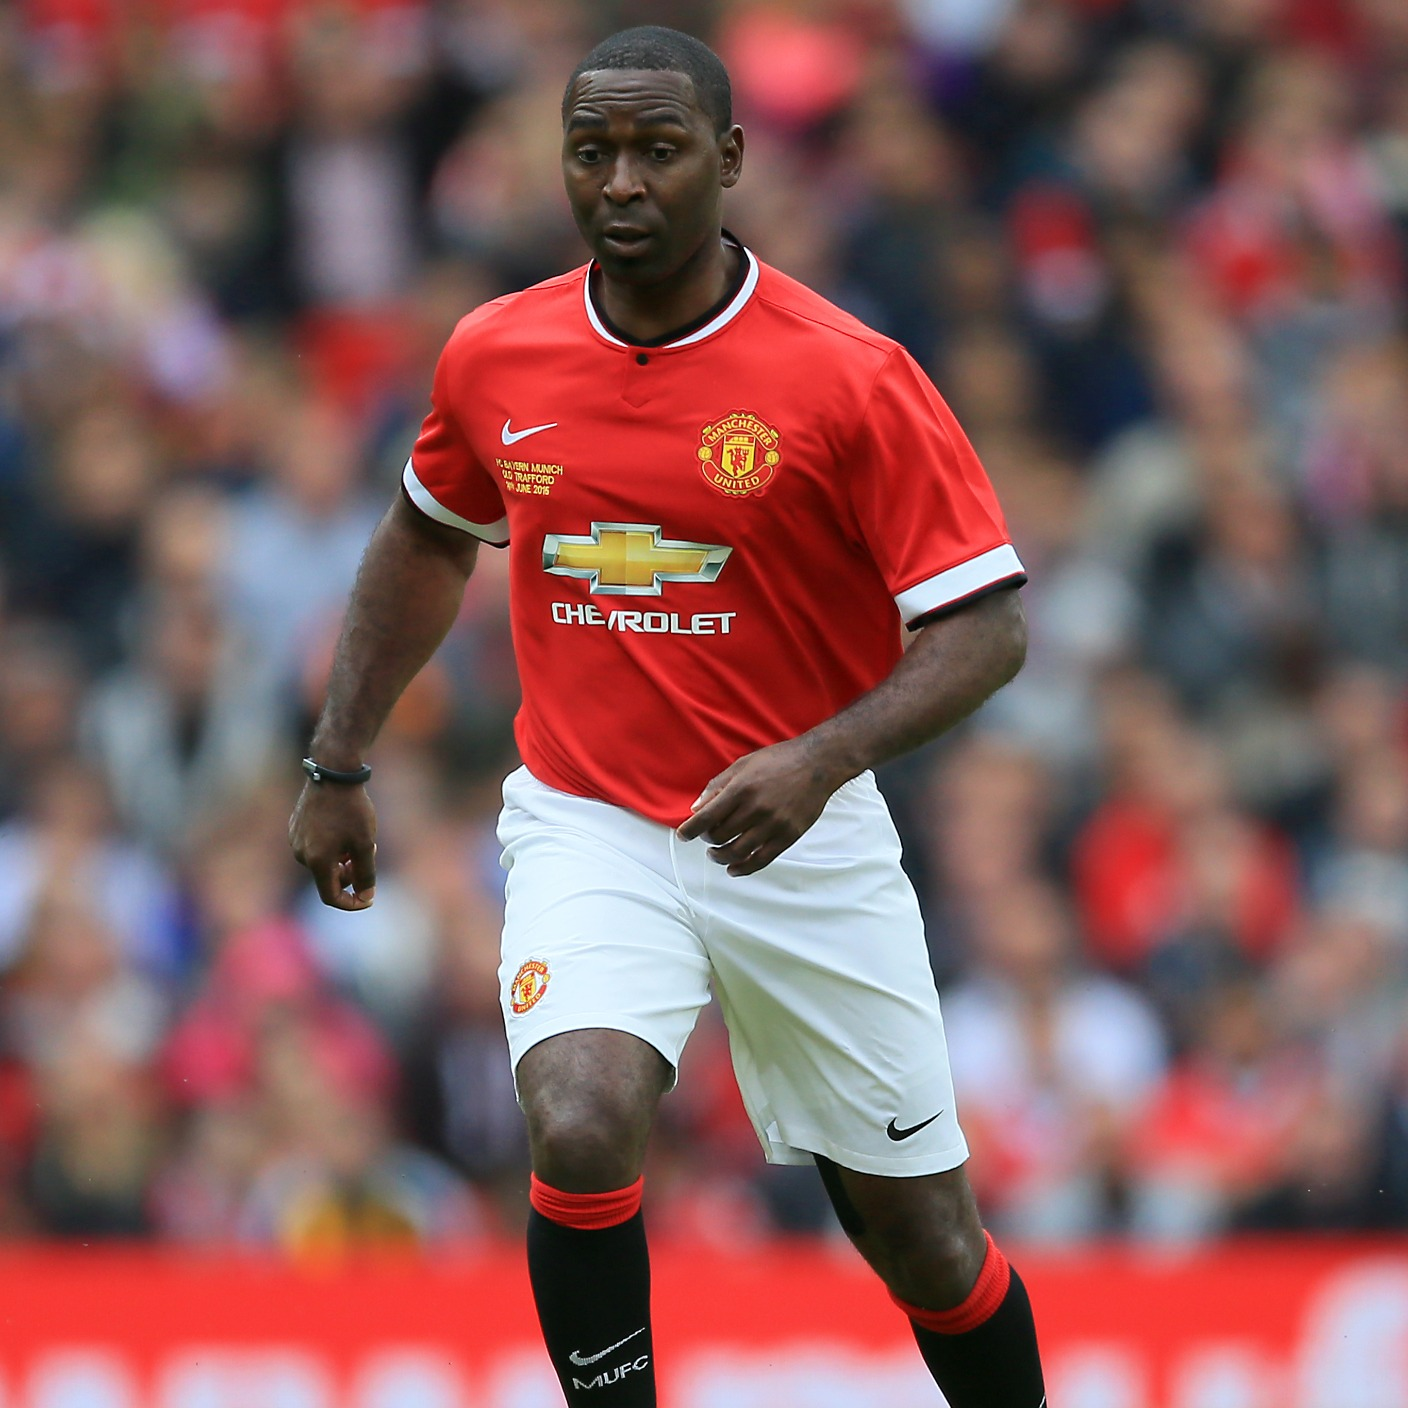 Andy Cole Indebted To His Nephew After Kidney Transplant